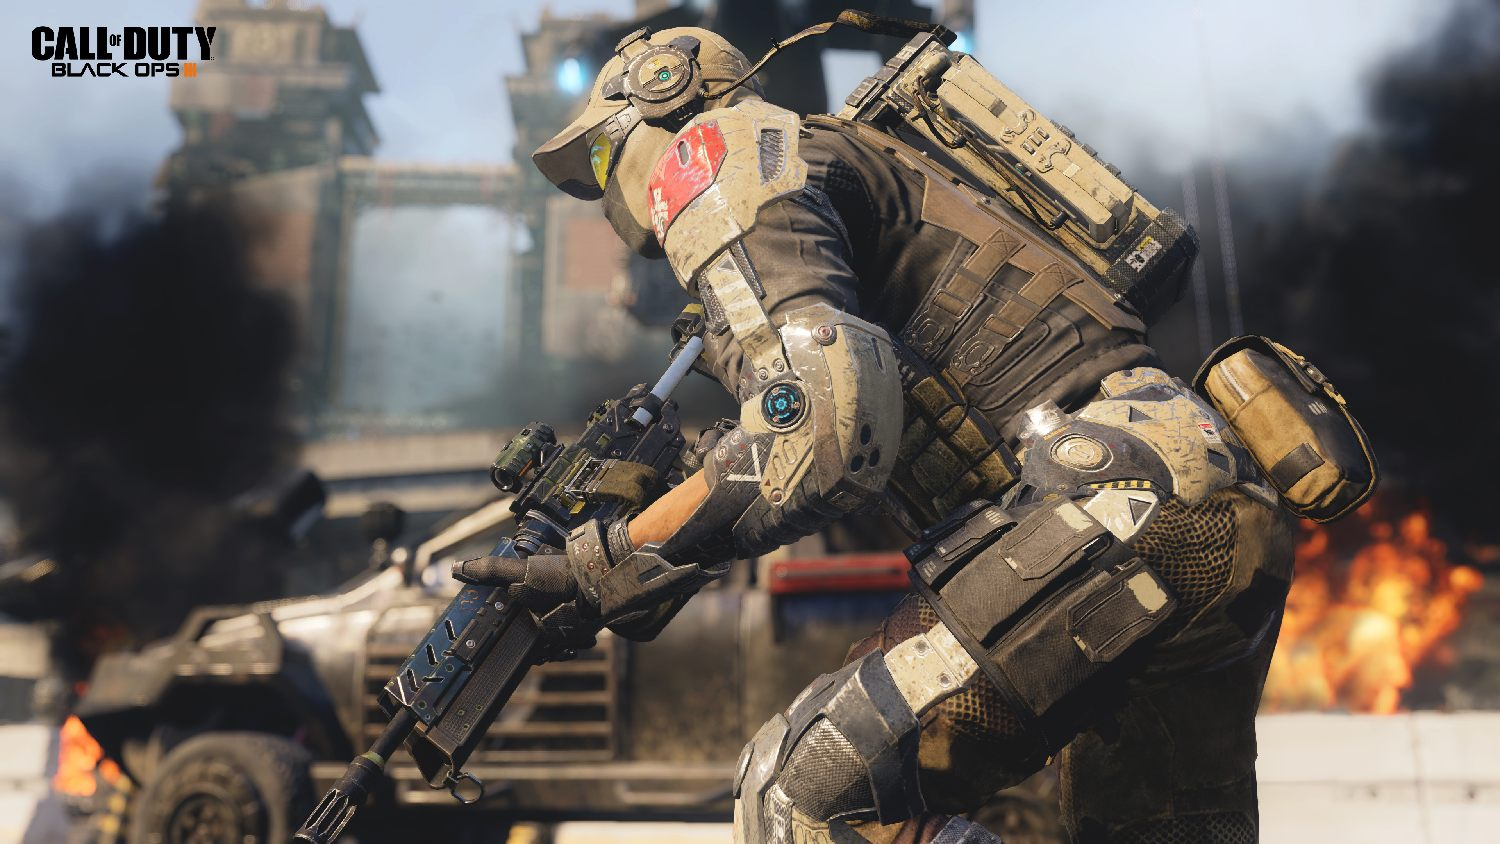 - Call of Duty: Black Ops III